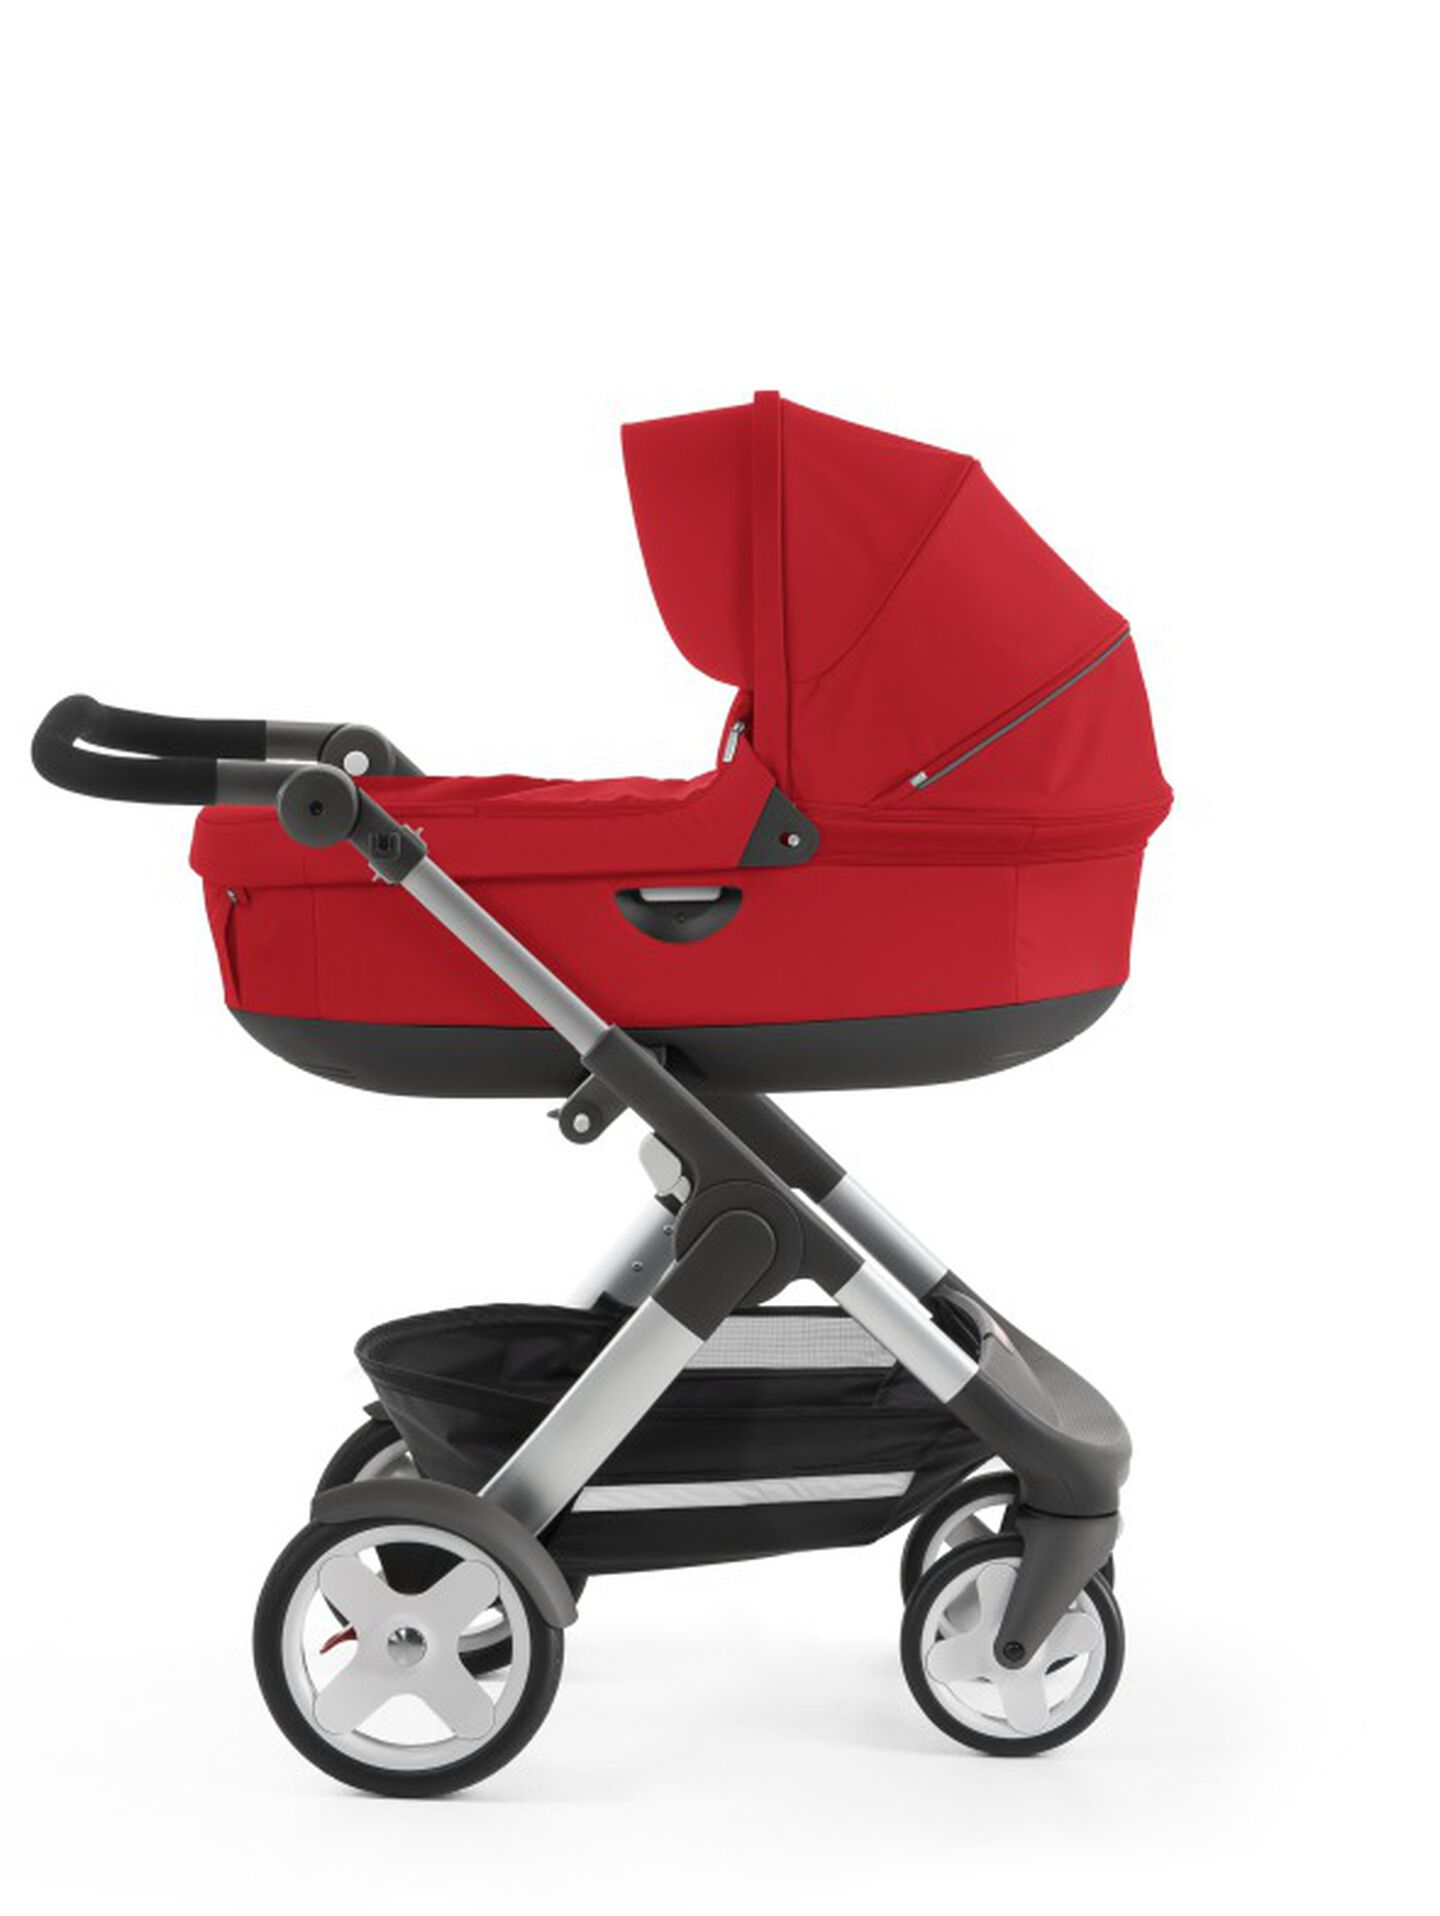 Stokke® Trailz™ Classic w Carry Cot Red, Red, mainview view 2